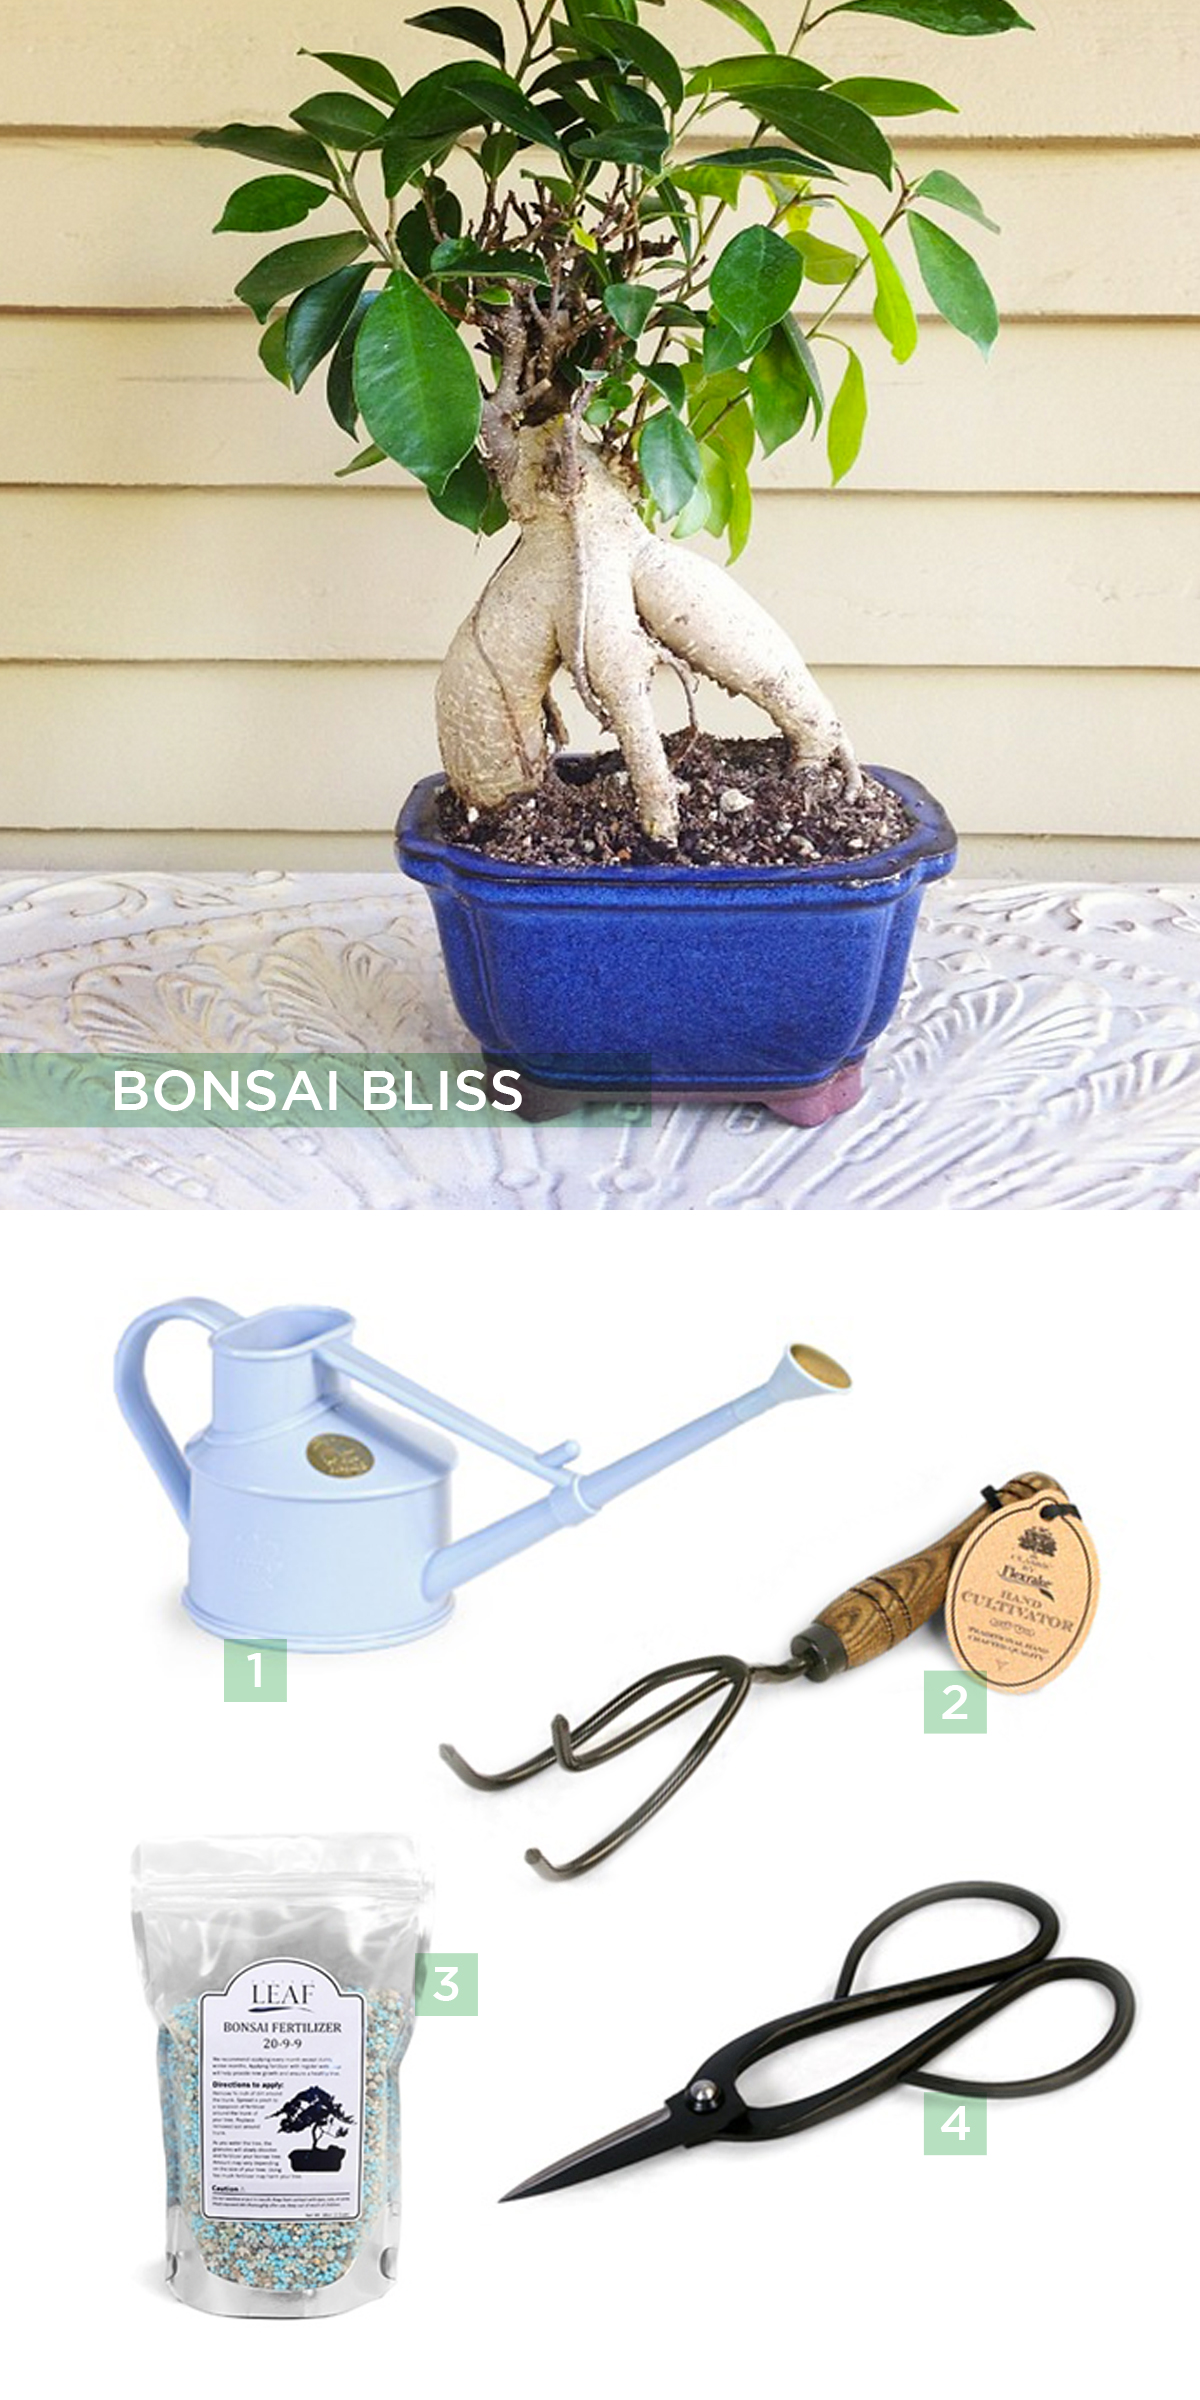 Bonsai-Bliss.jpg